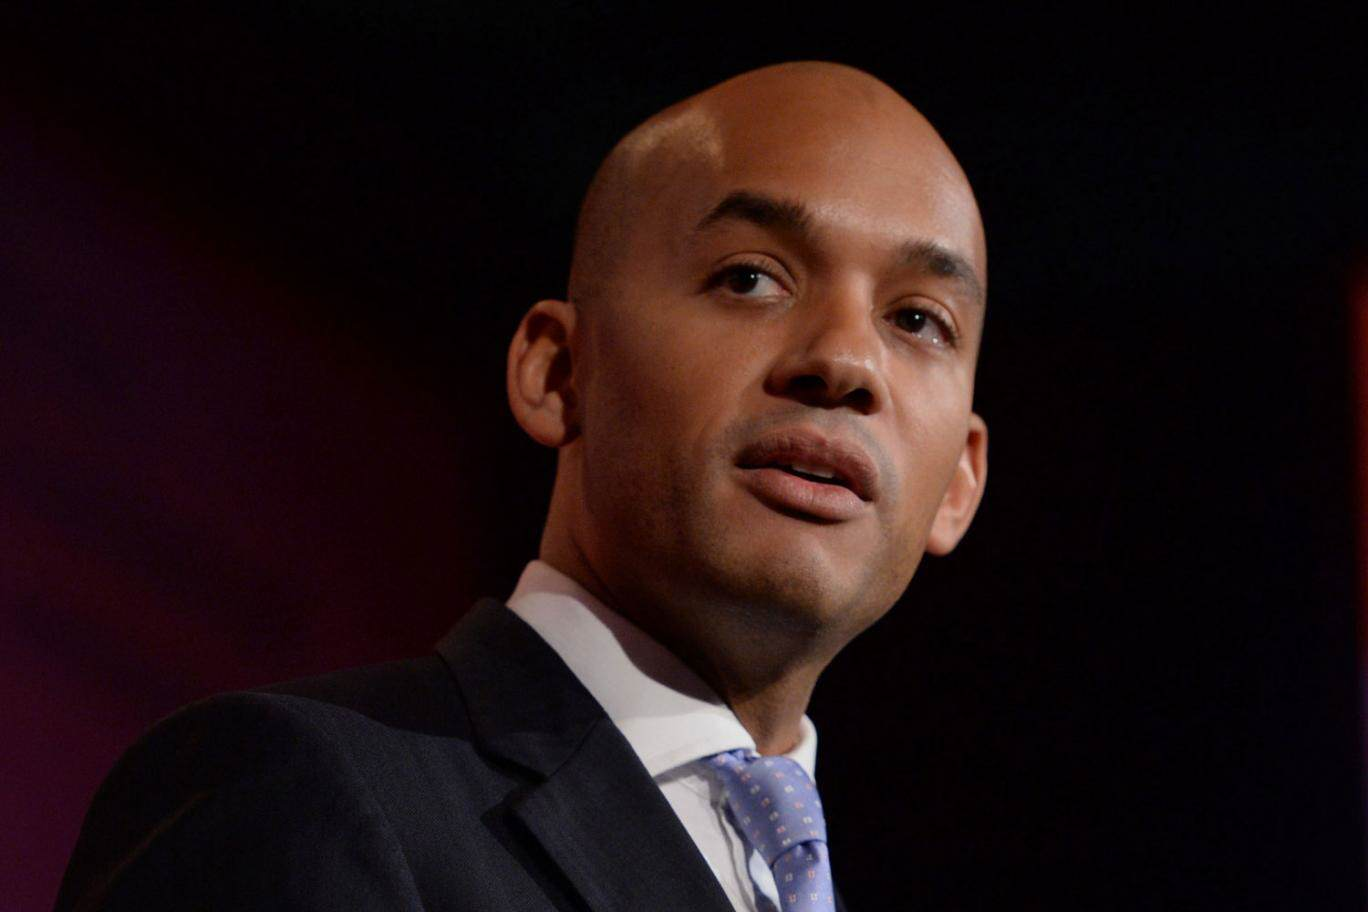 chukaummuna Government Controversially Scraps Programme That Tackles Gang Violence